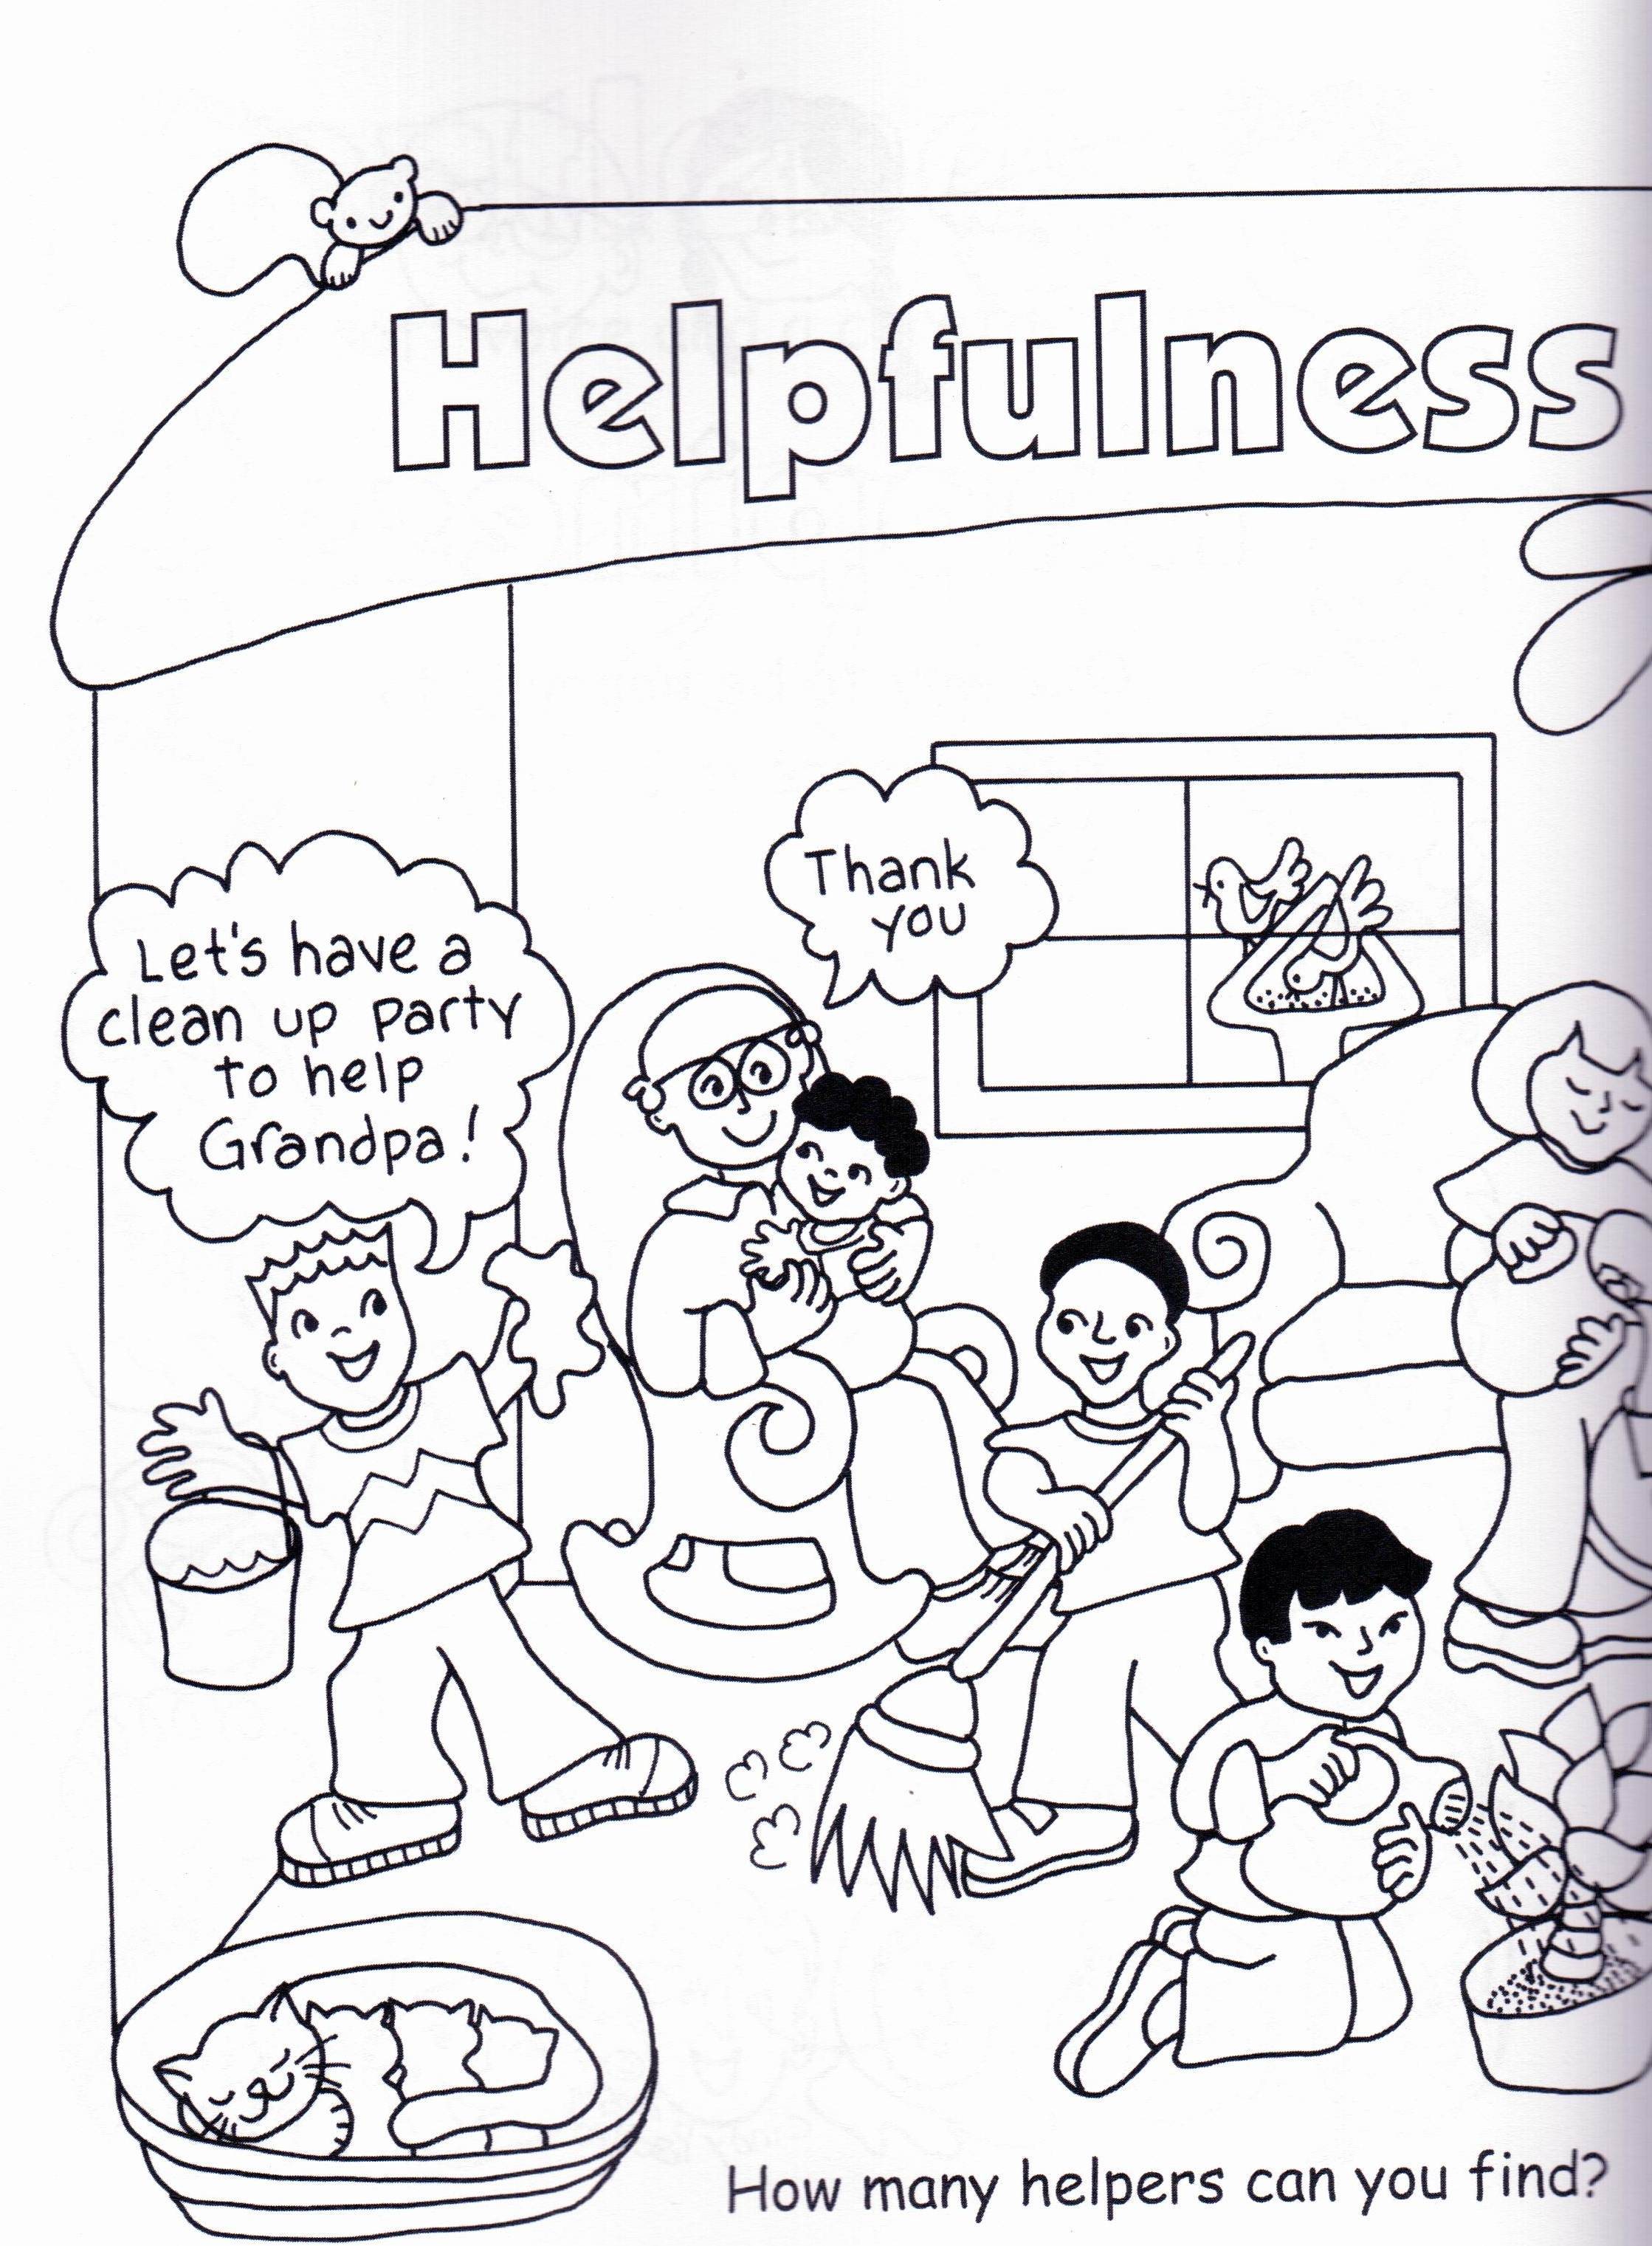 virtues activity and coloring book 5 7 yrs peaceful pages